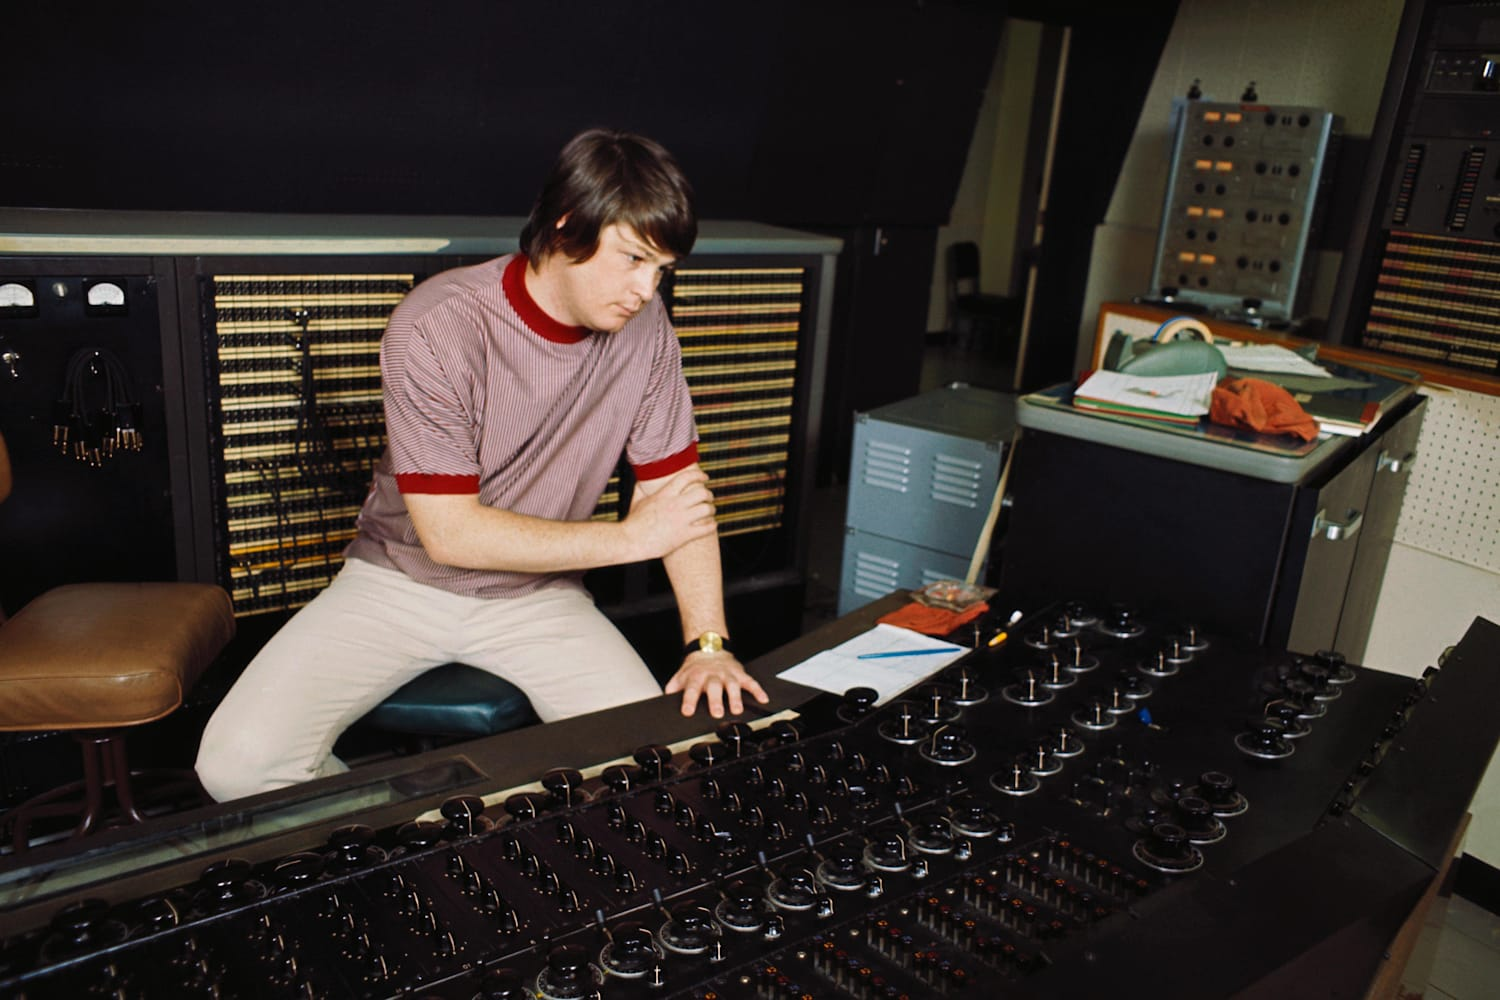 El Topic De Beach Boys - Página 9 Brian-wilson-pet-sounds-estudio